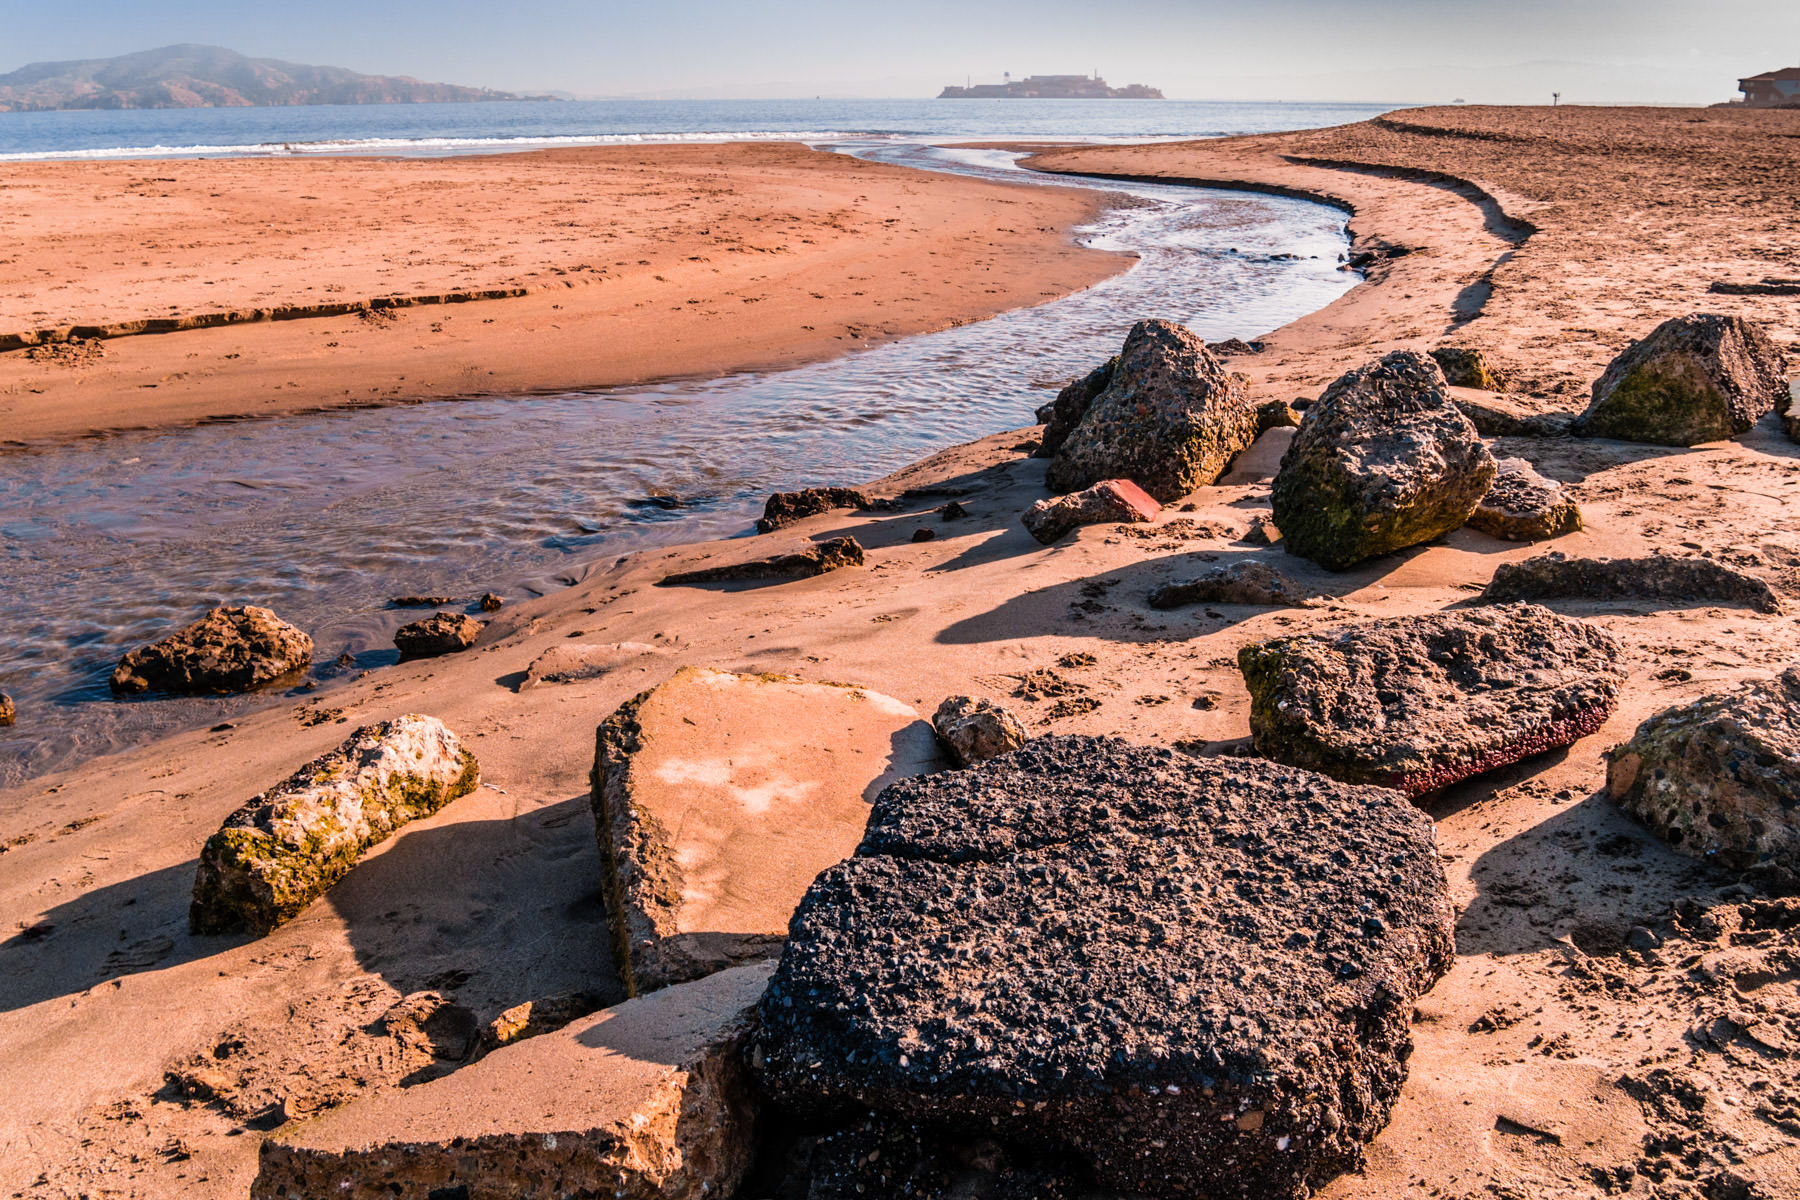 Rocks lie on the beach at Crissy Field, San Francisco.